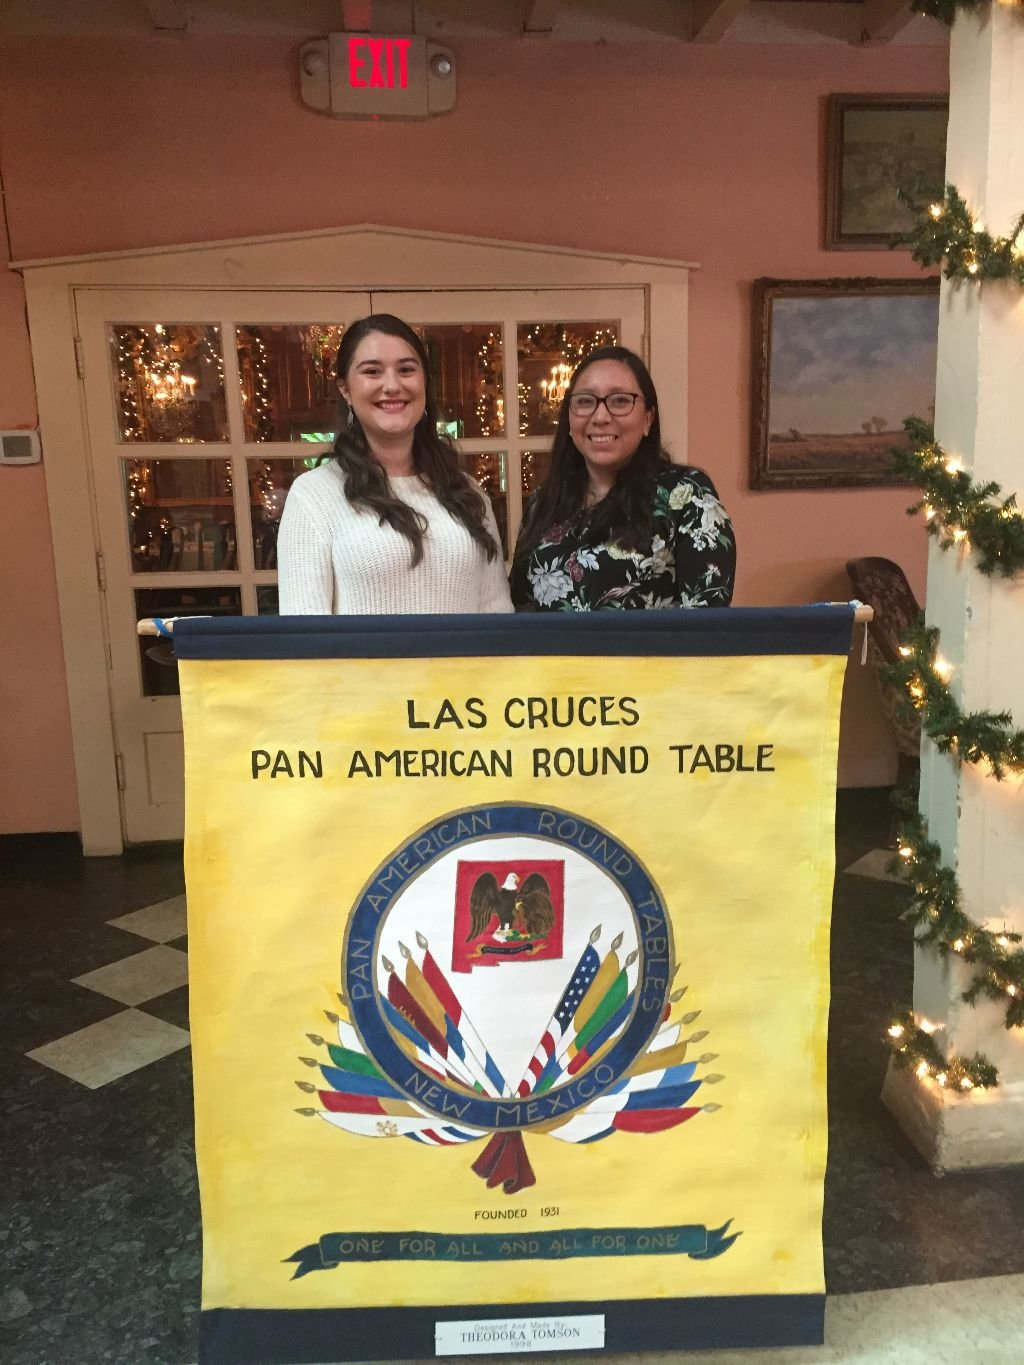 The Las Cruces Pan American Round Table fall 2019 NMSU scholarship recipients, Estela Brown, left, is a Spanish major, and Josephina Sanchez, a communication disorders and foreign language major.